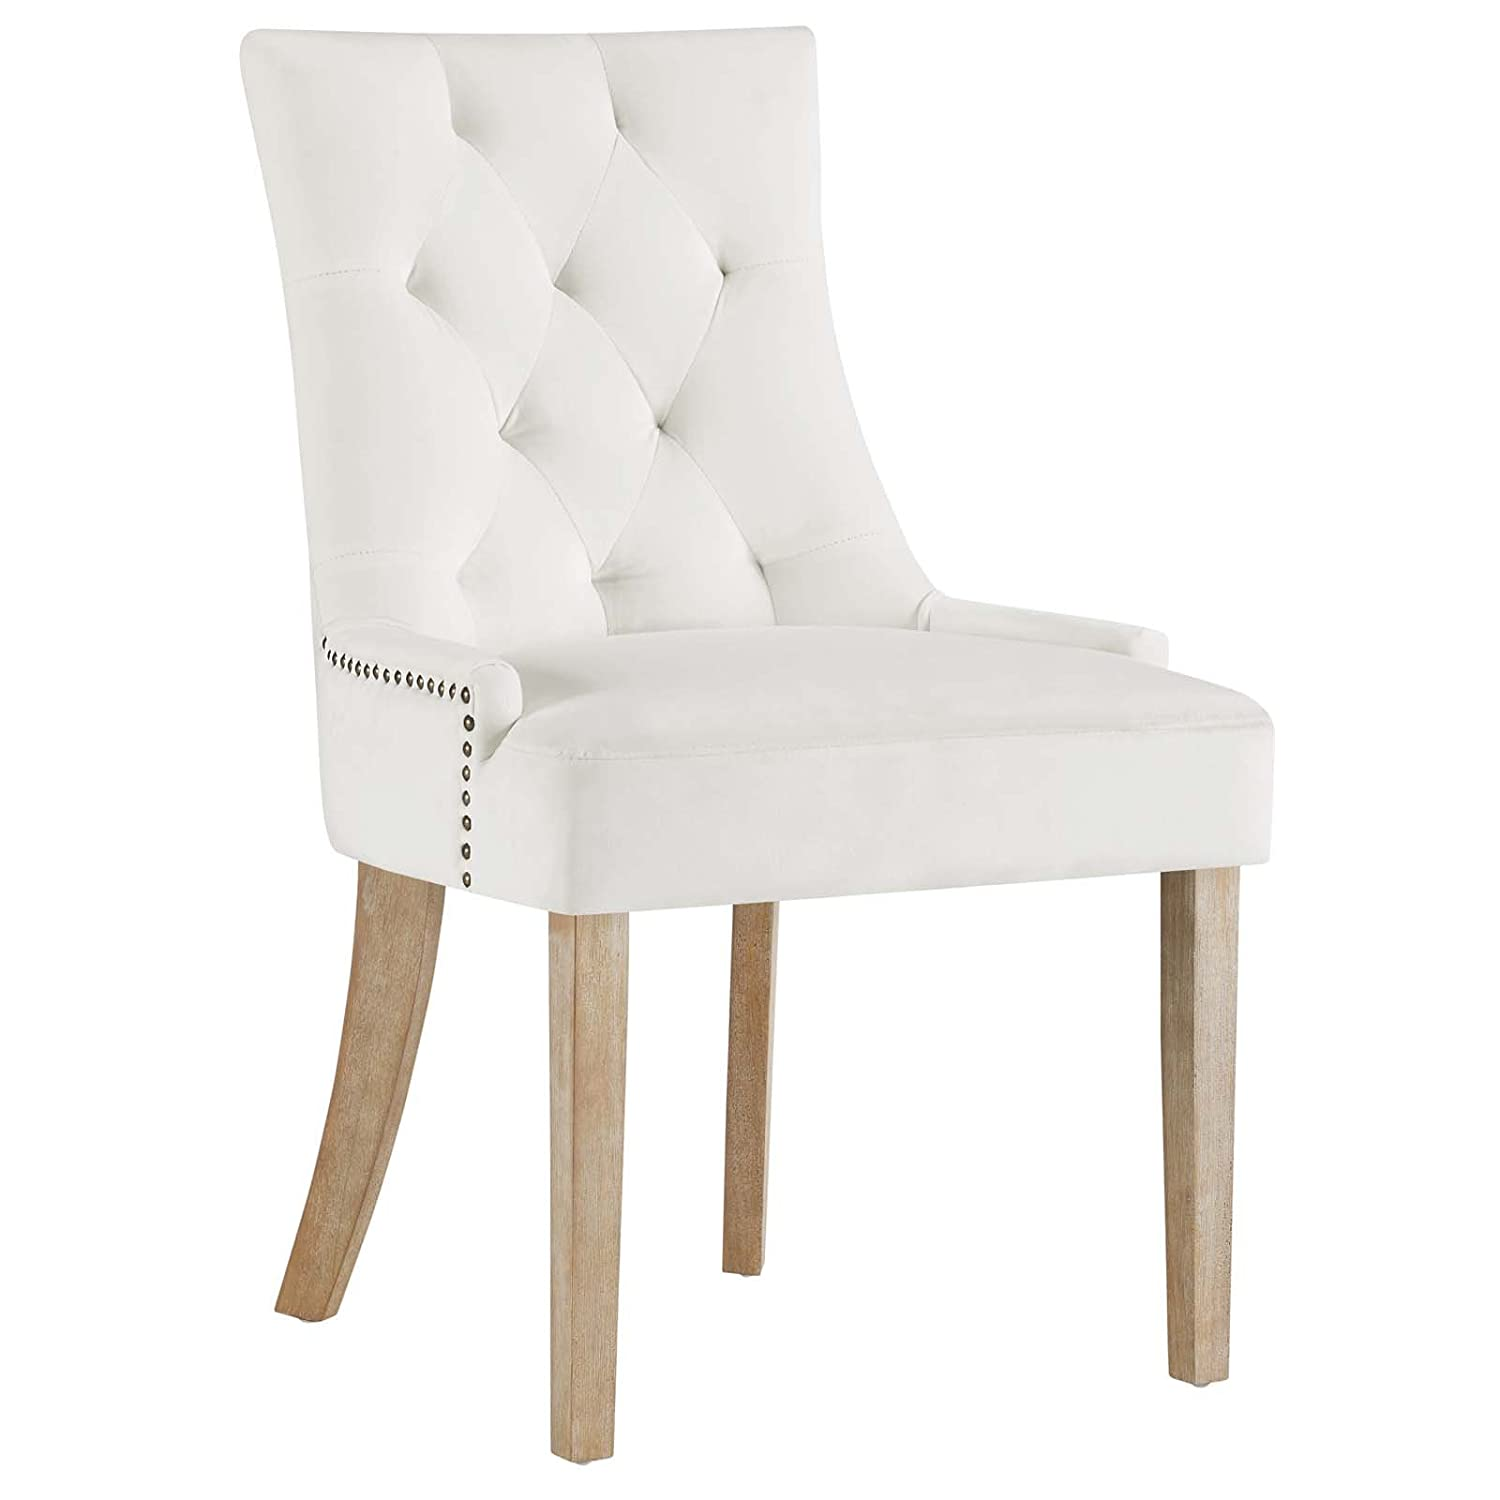 Modway Pose Velvet Polyester Upholstered Tufted Dining Chair With Nailhead Trim, In Ivory